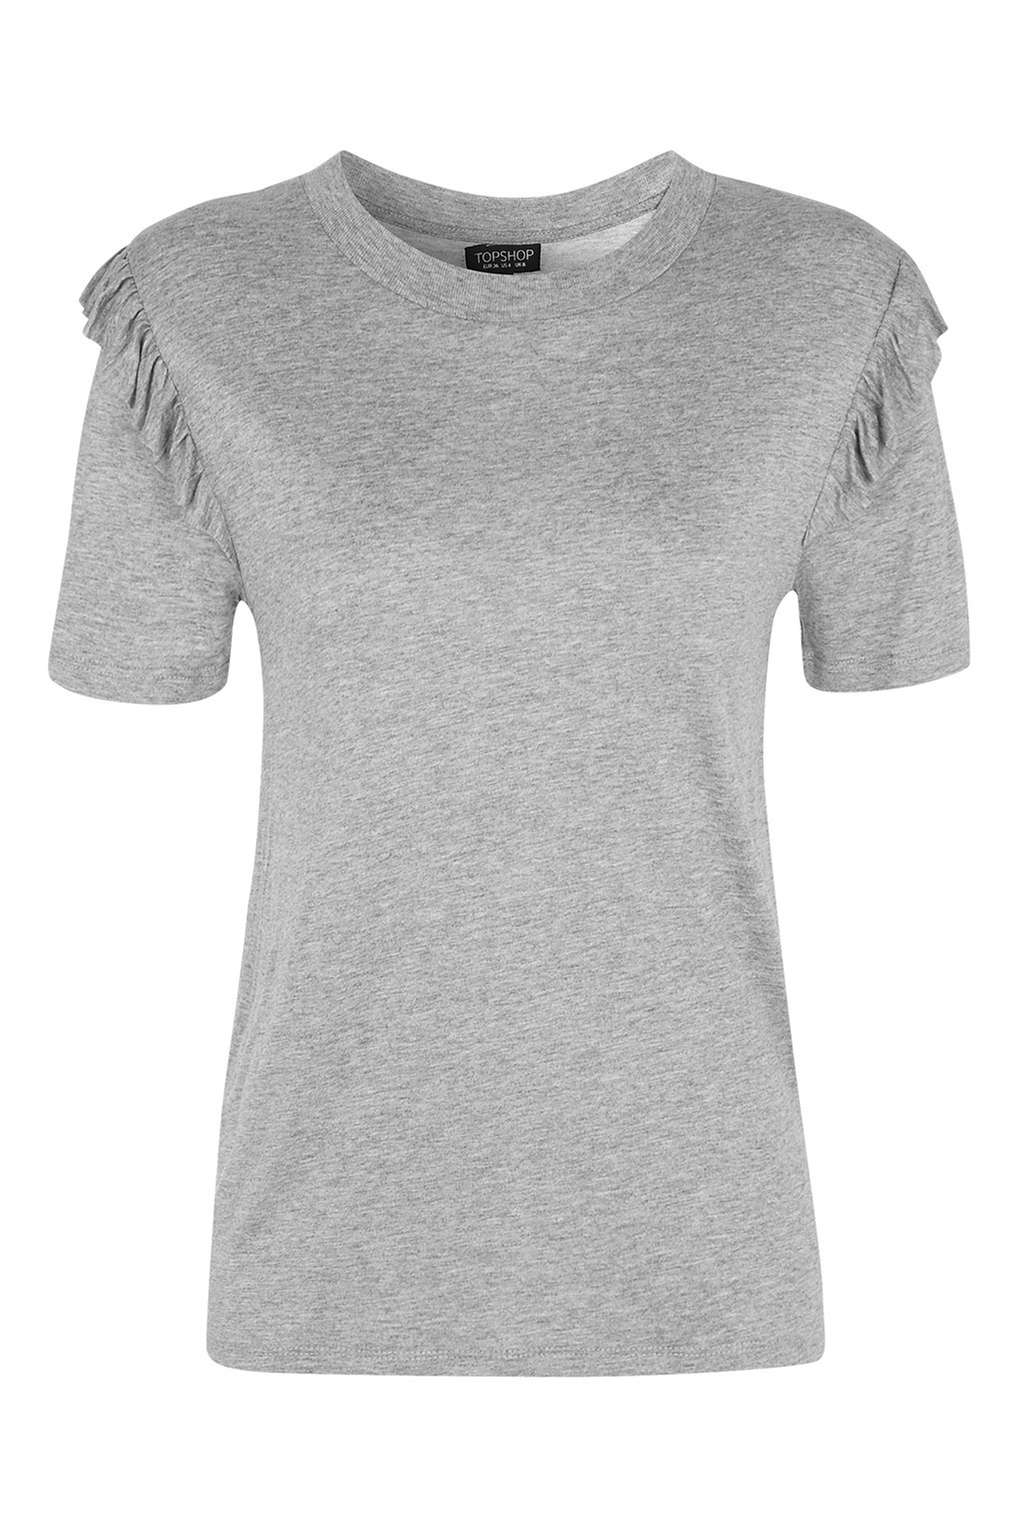 Lyst topshop petite frill sleeve t shirt in gray for Frill sleeve t shirt